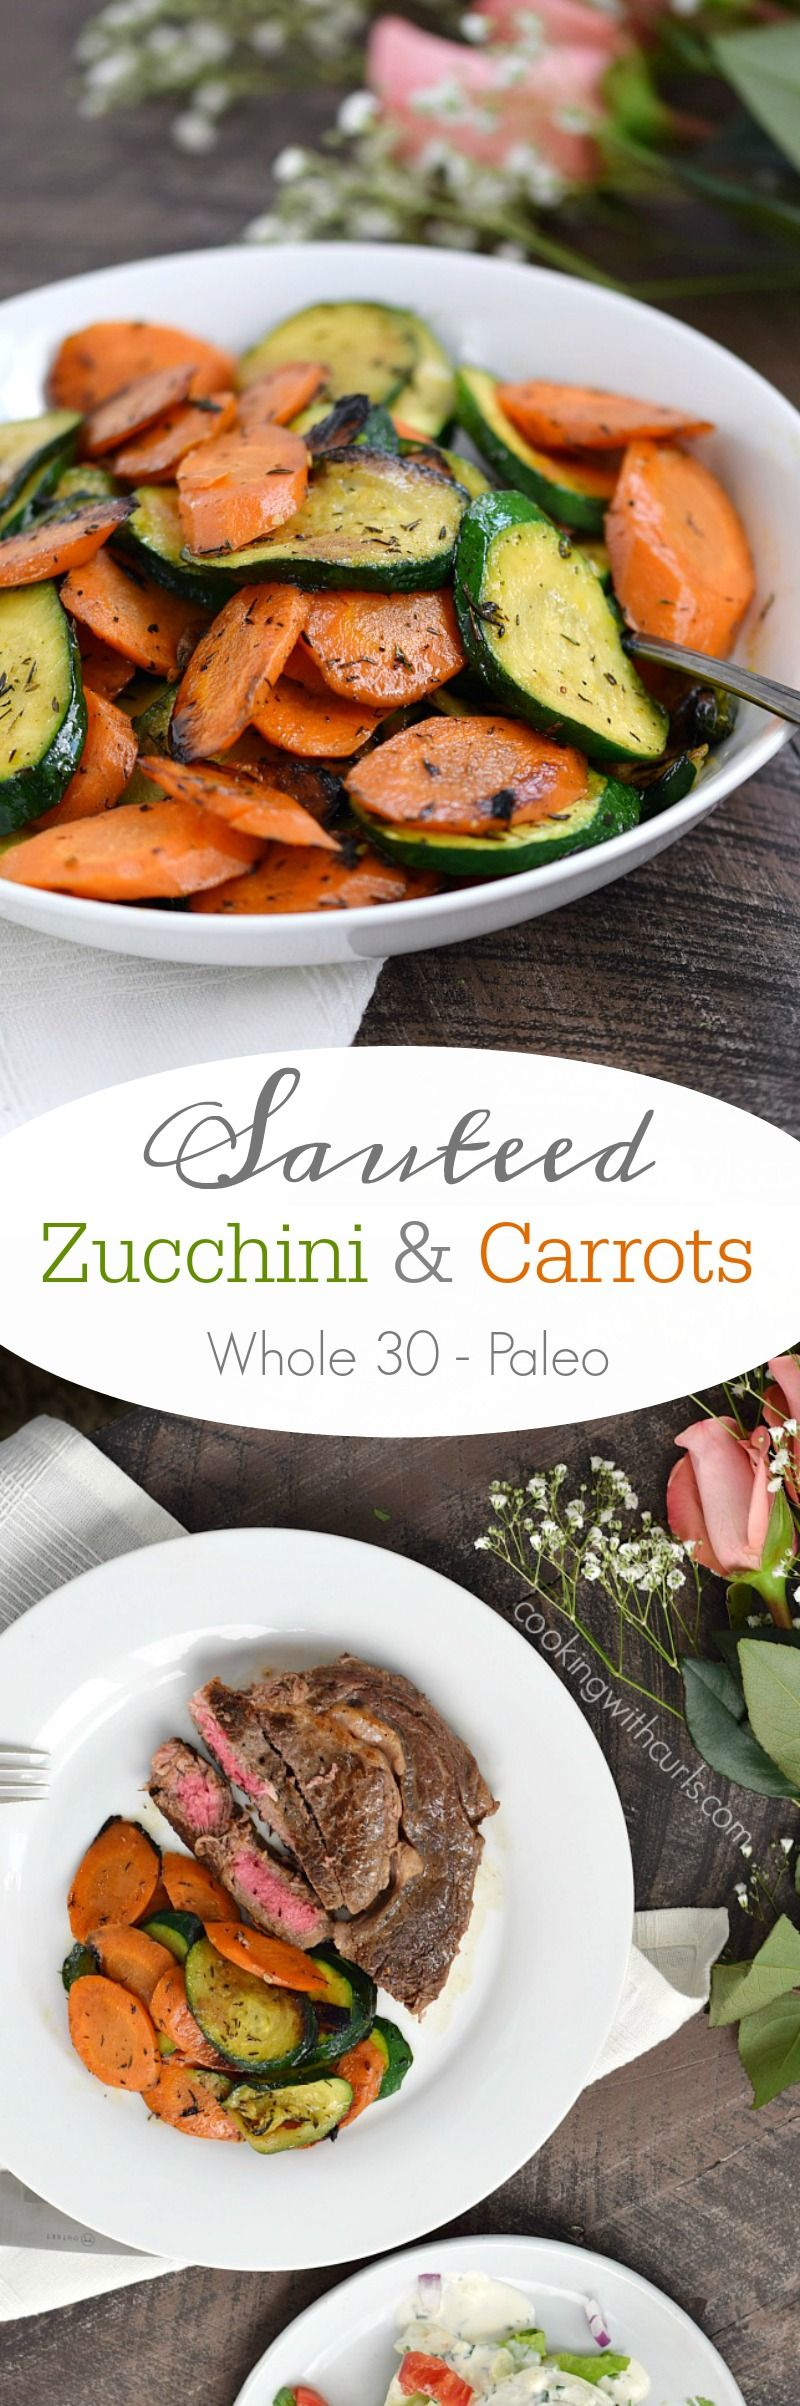 These Sauteed Zucchini and Carrots are super easy to prepare and make the perfect side dish along side seafood steaks and chicken